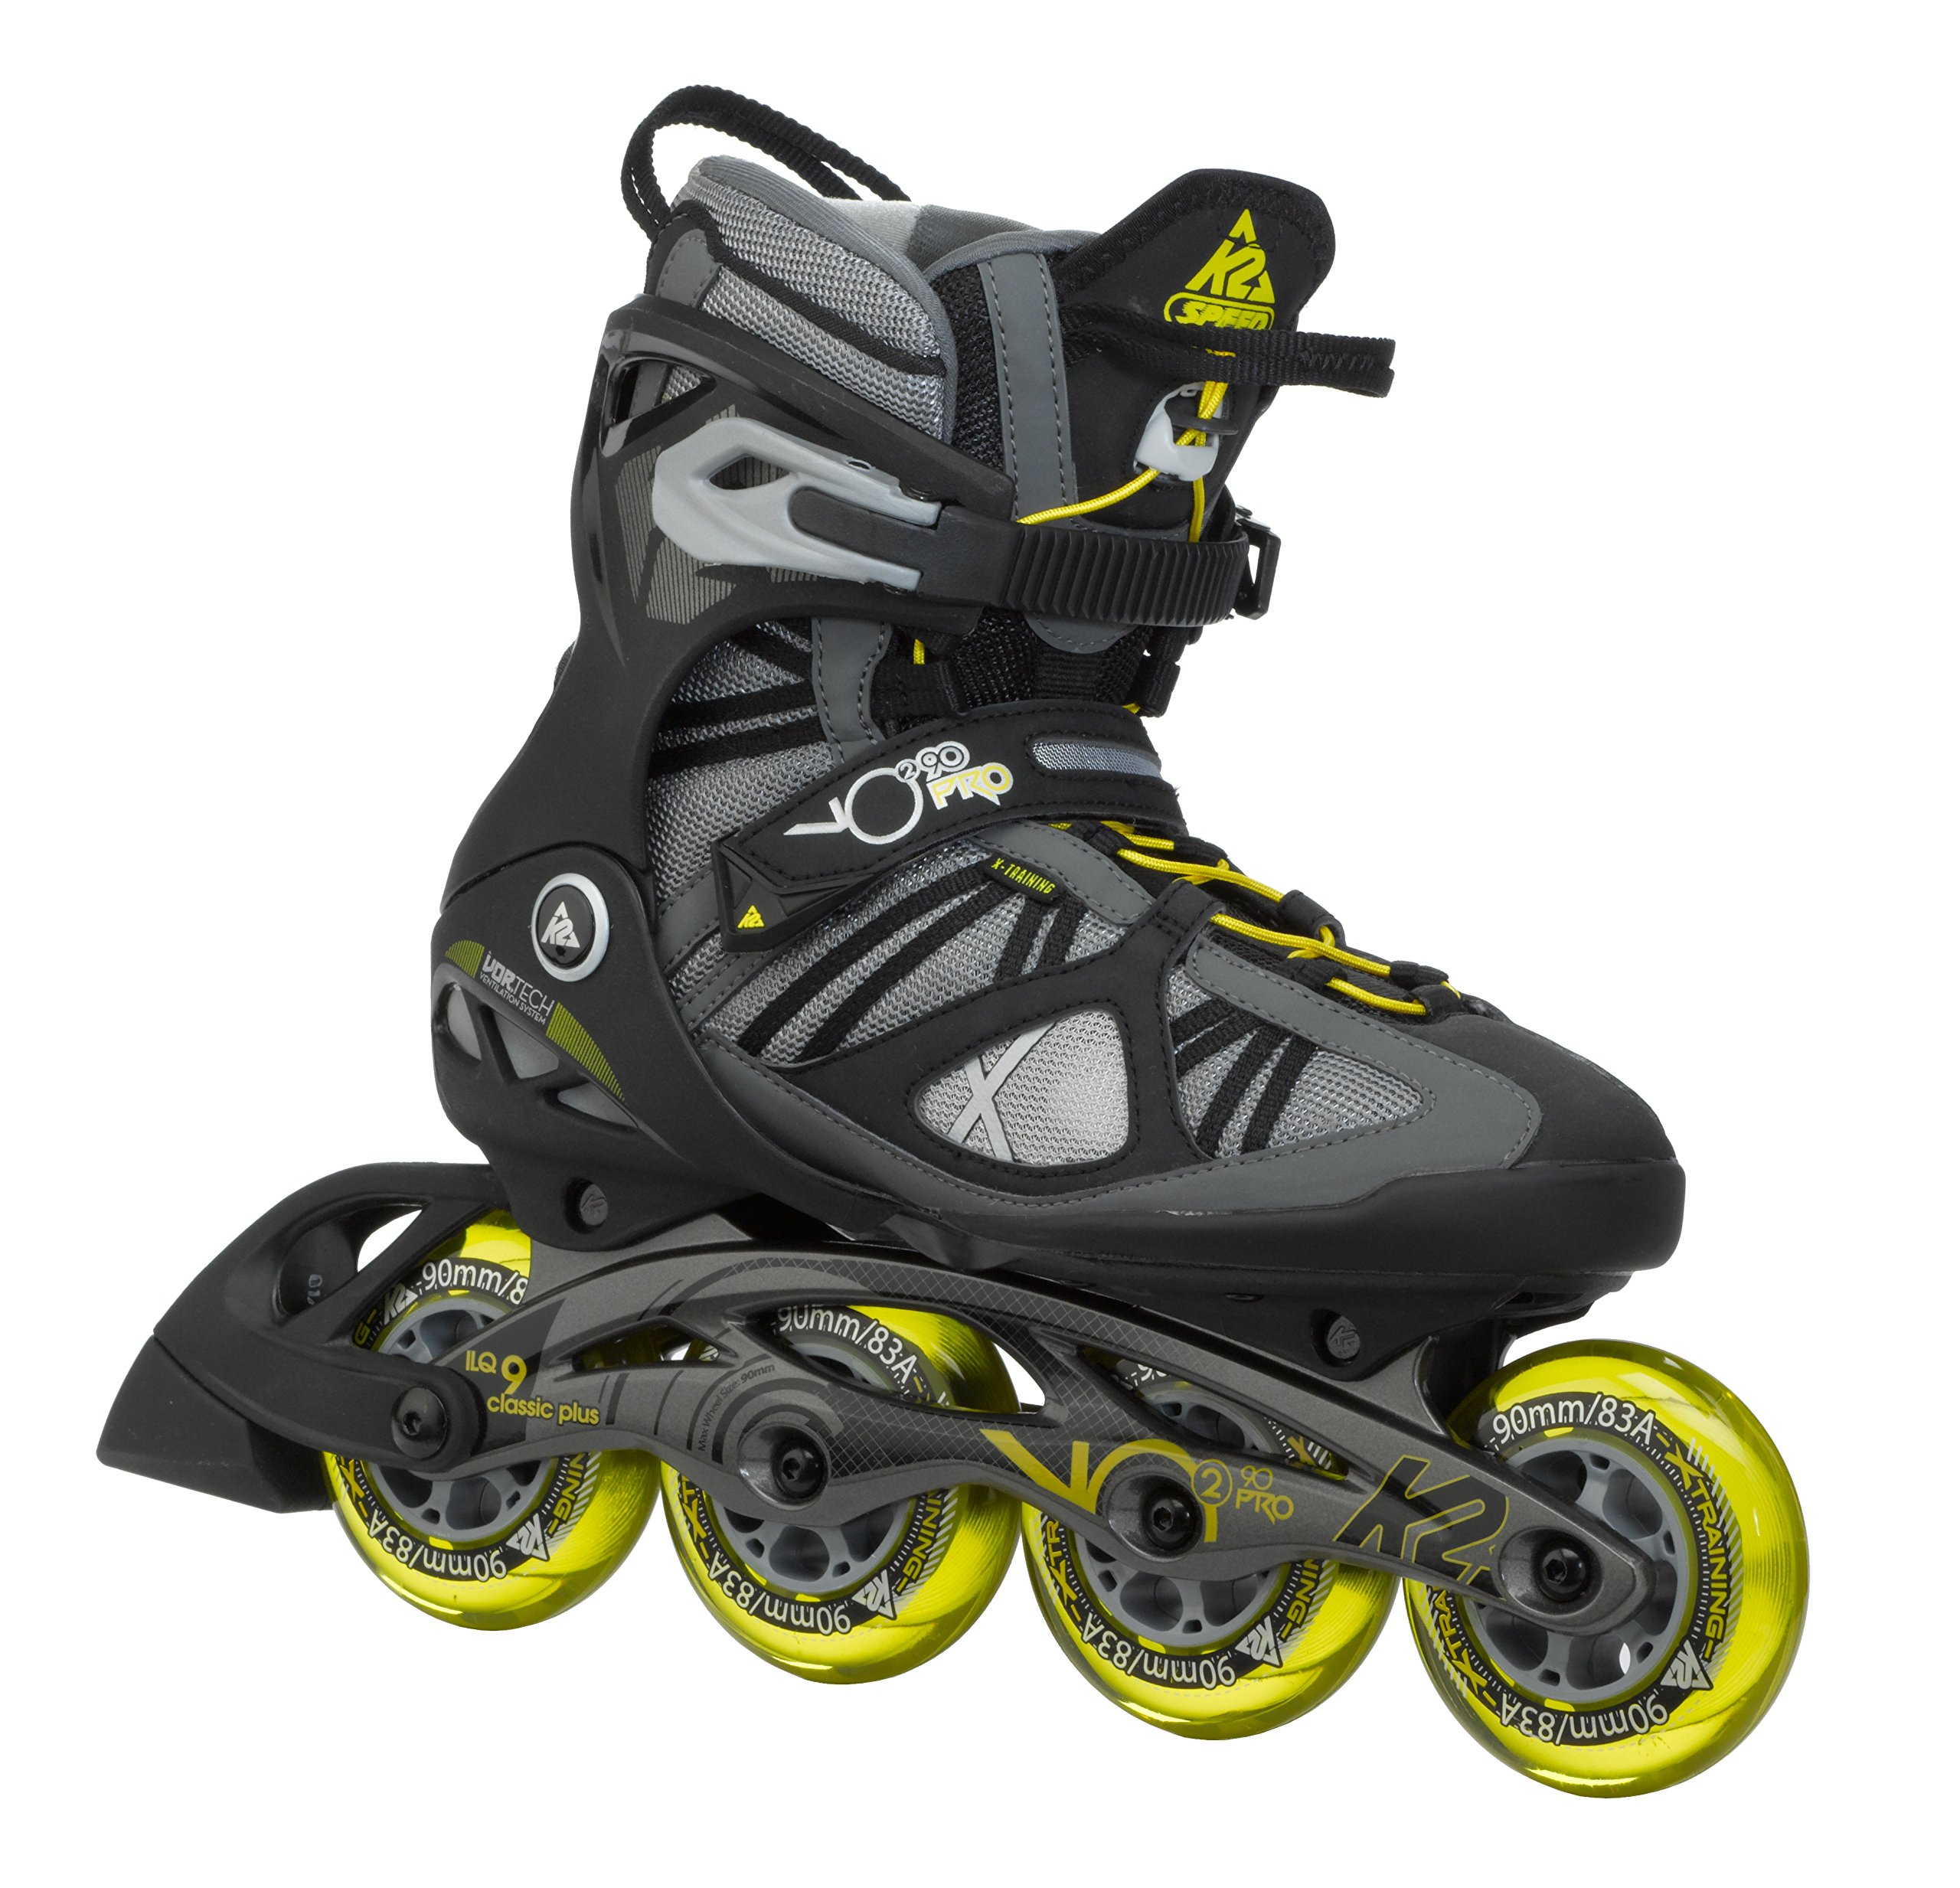 K2 Skate Men's VO2 90 Pro Inline Skates, Gunmetal/Yellow, 7 by K2 Skate